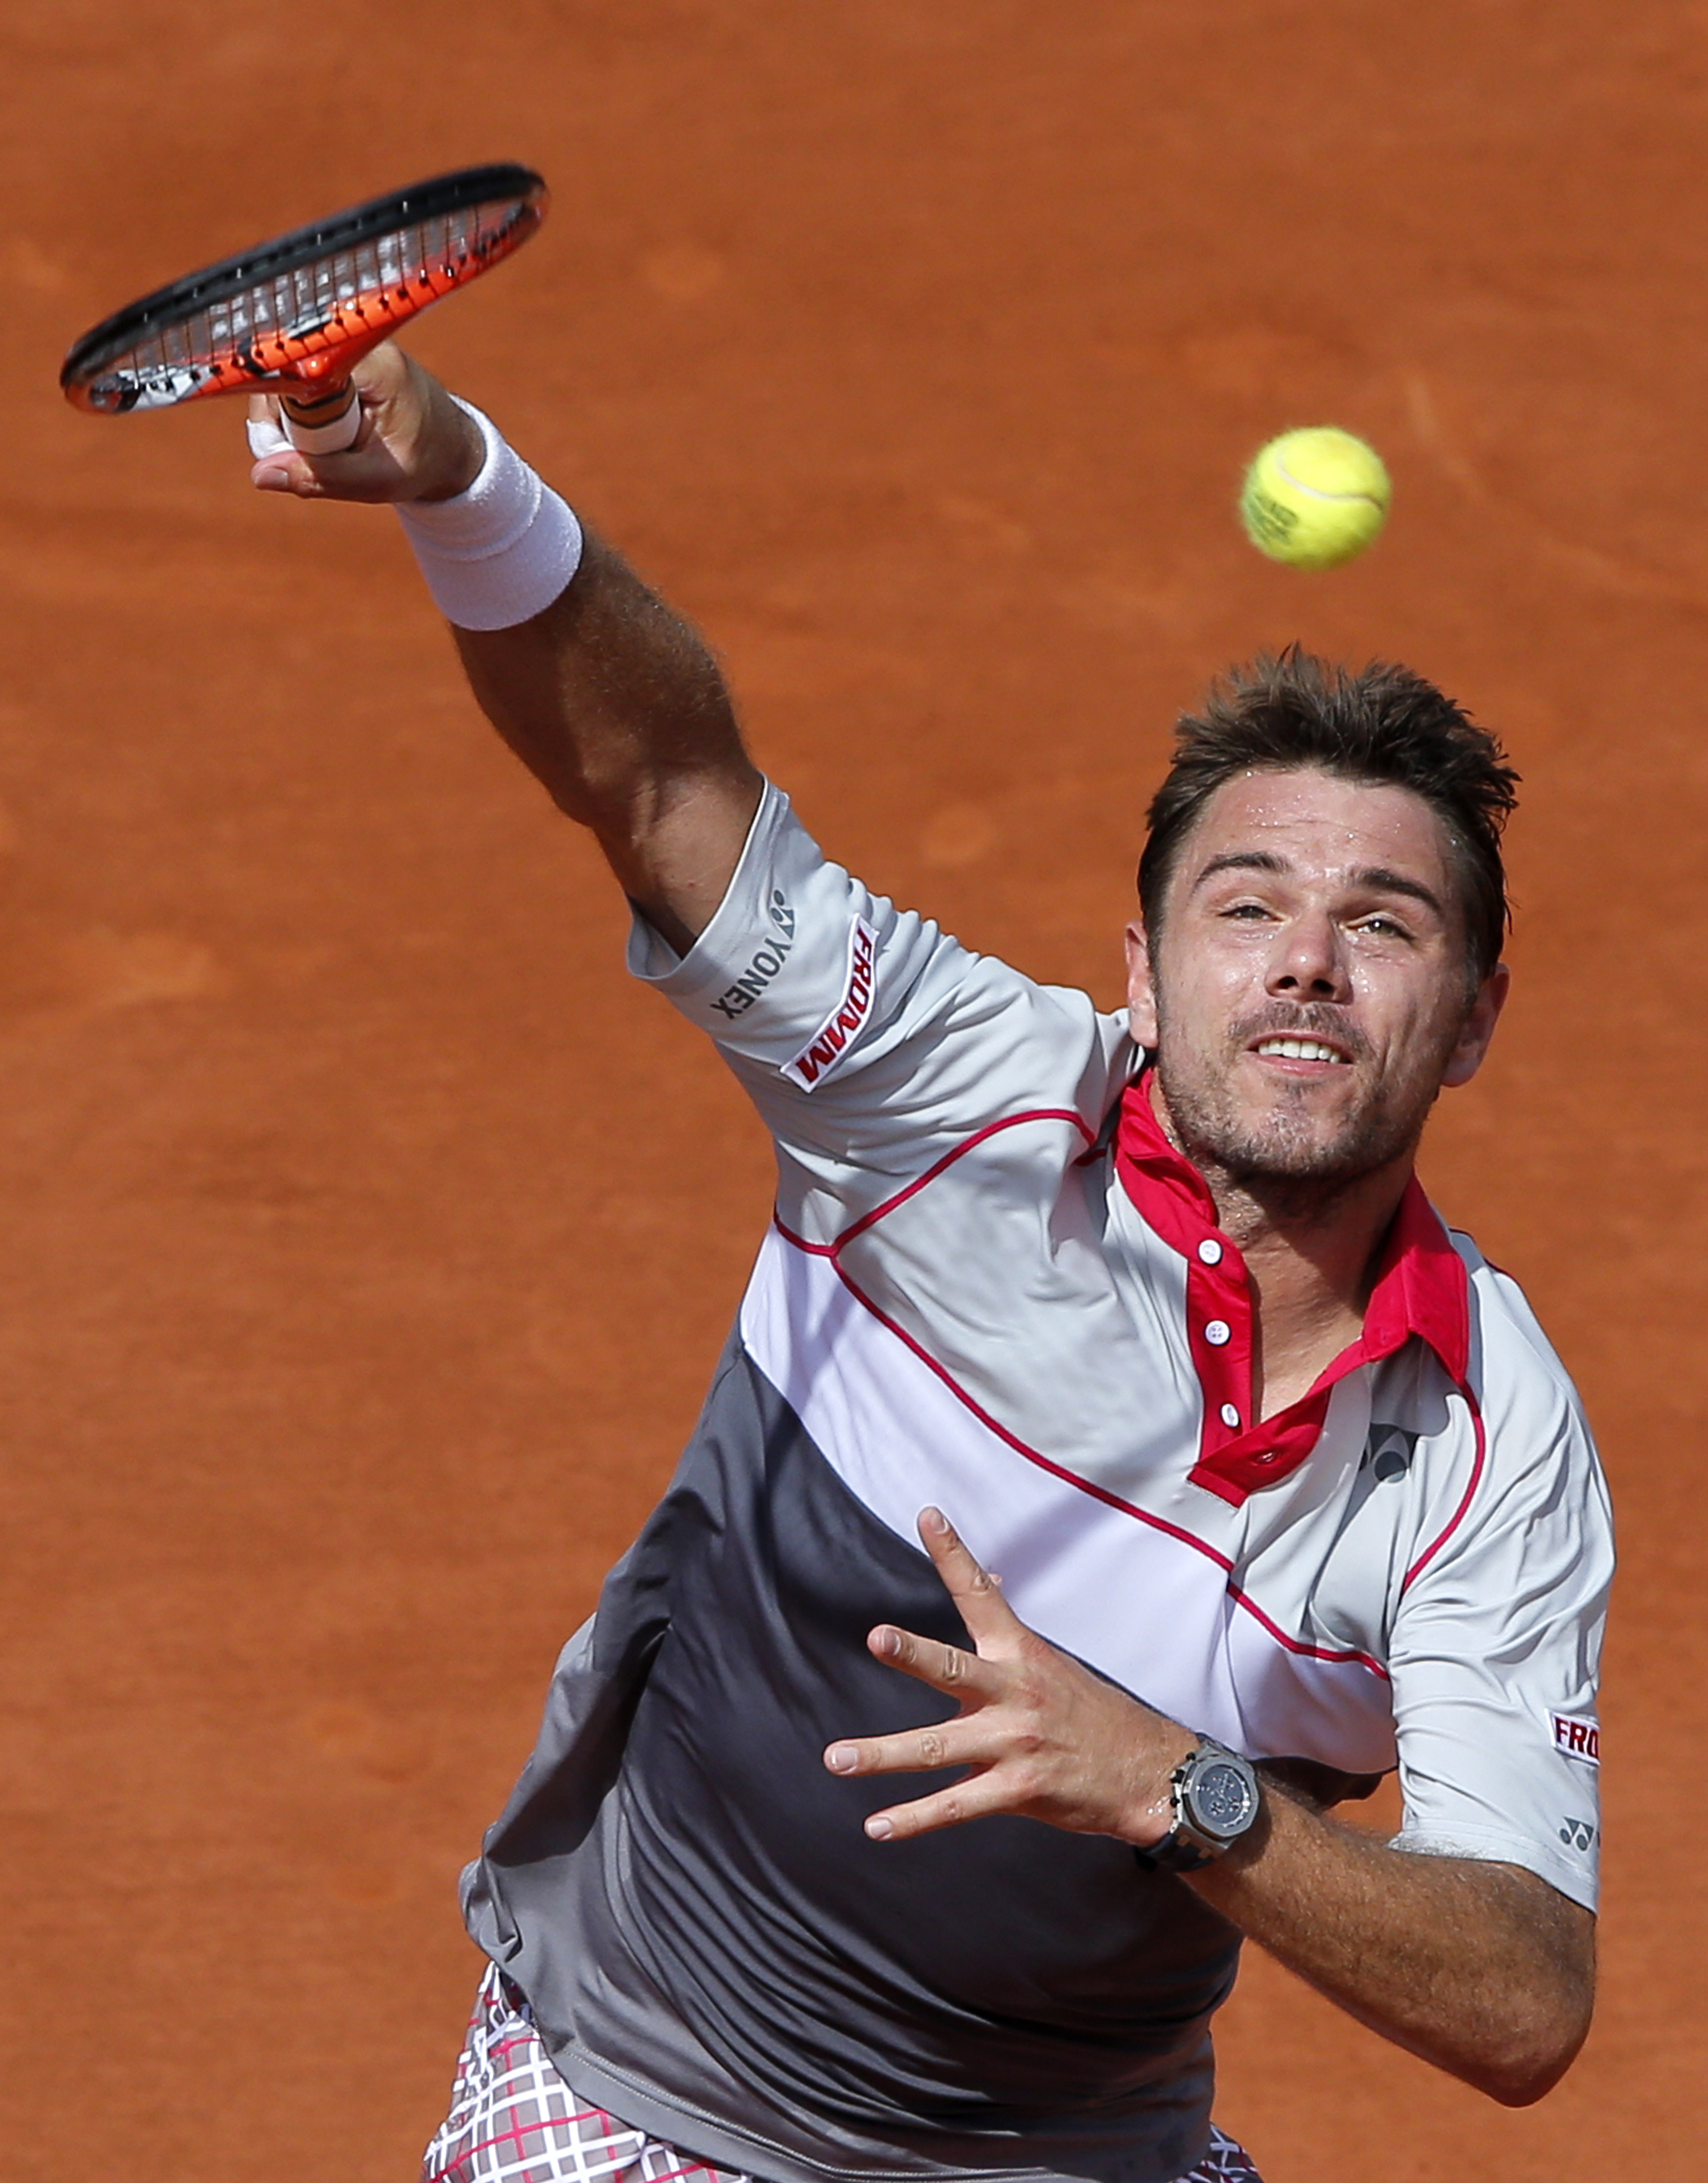 france_tennis_french_open773147258184_r9644.jpg